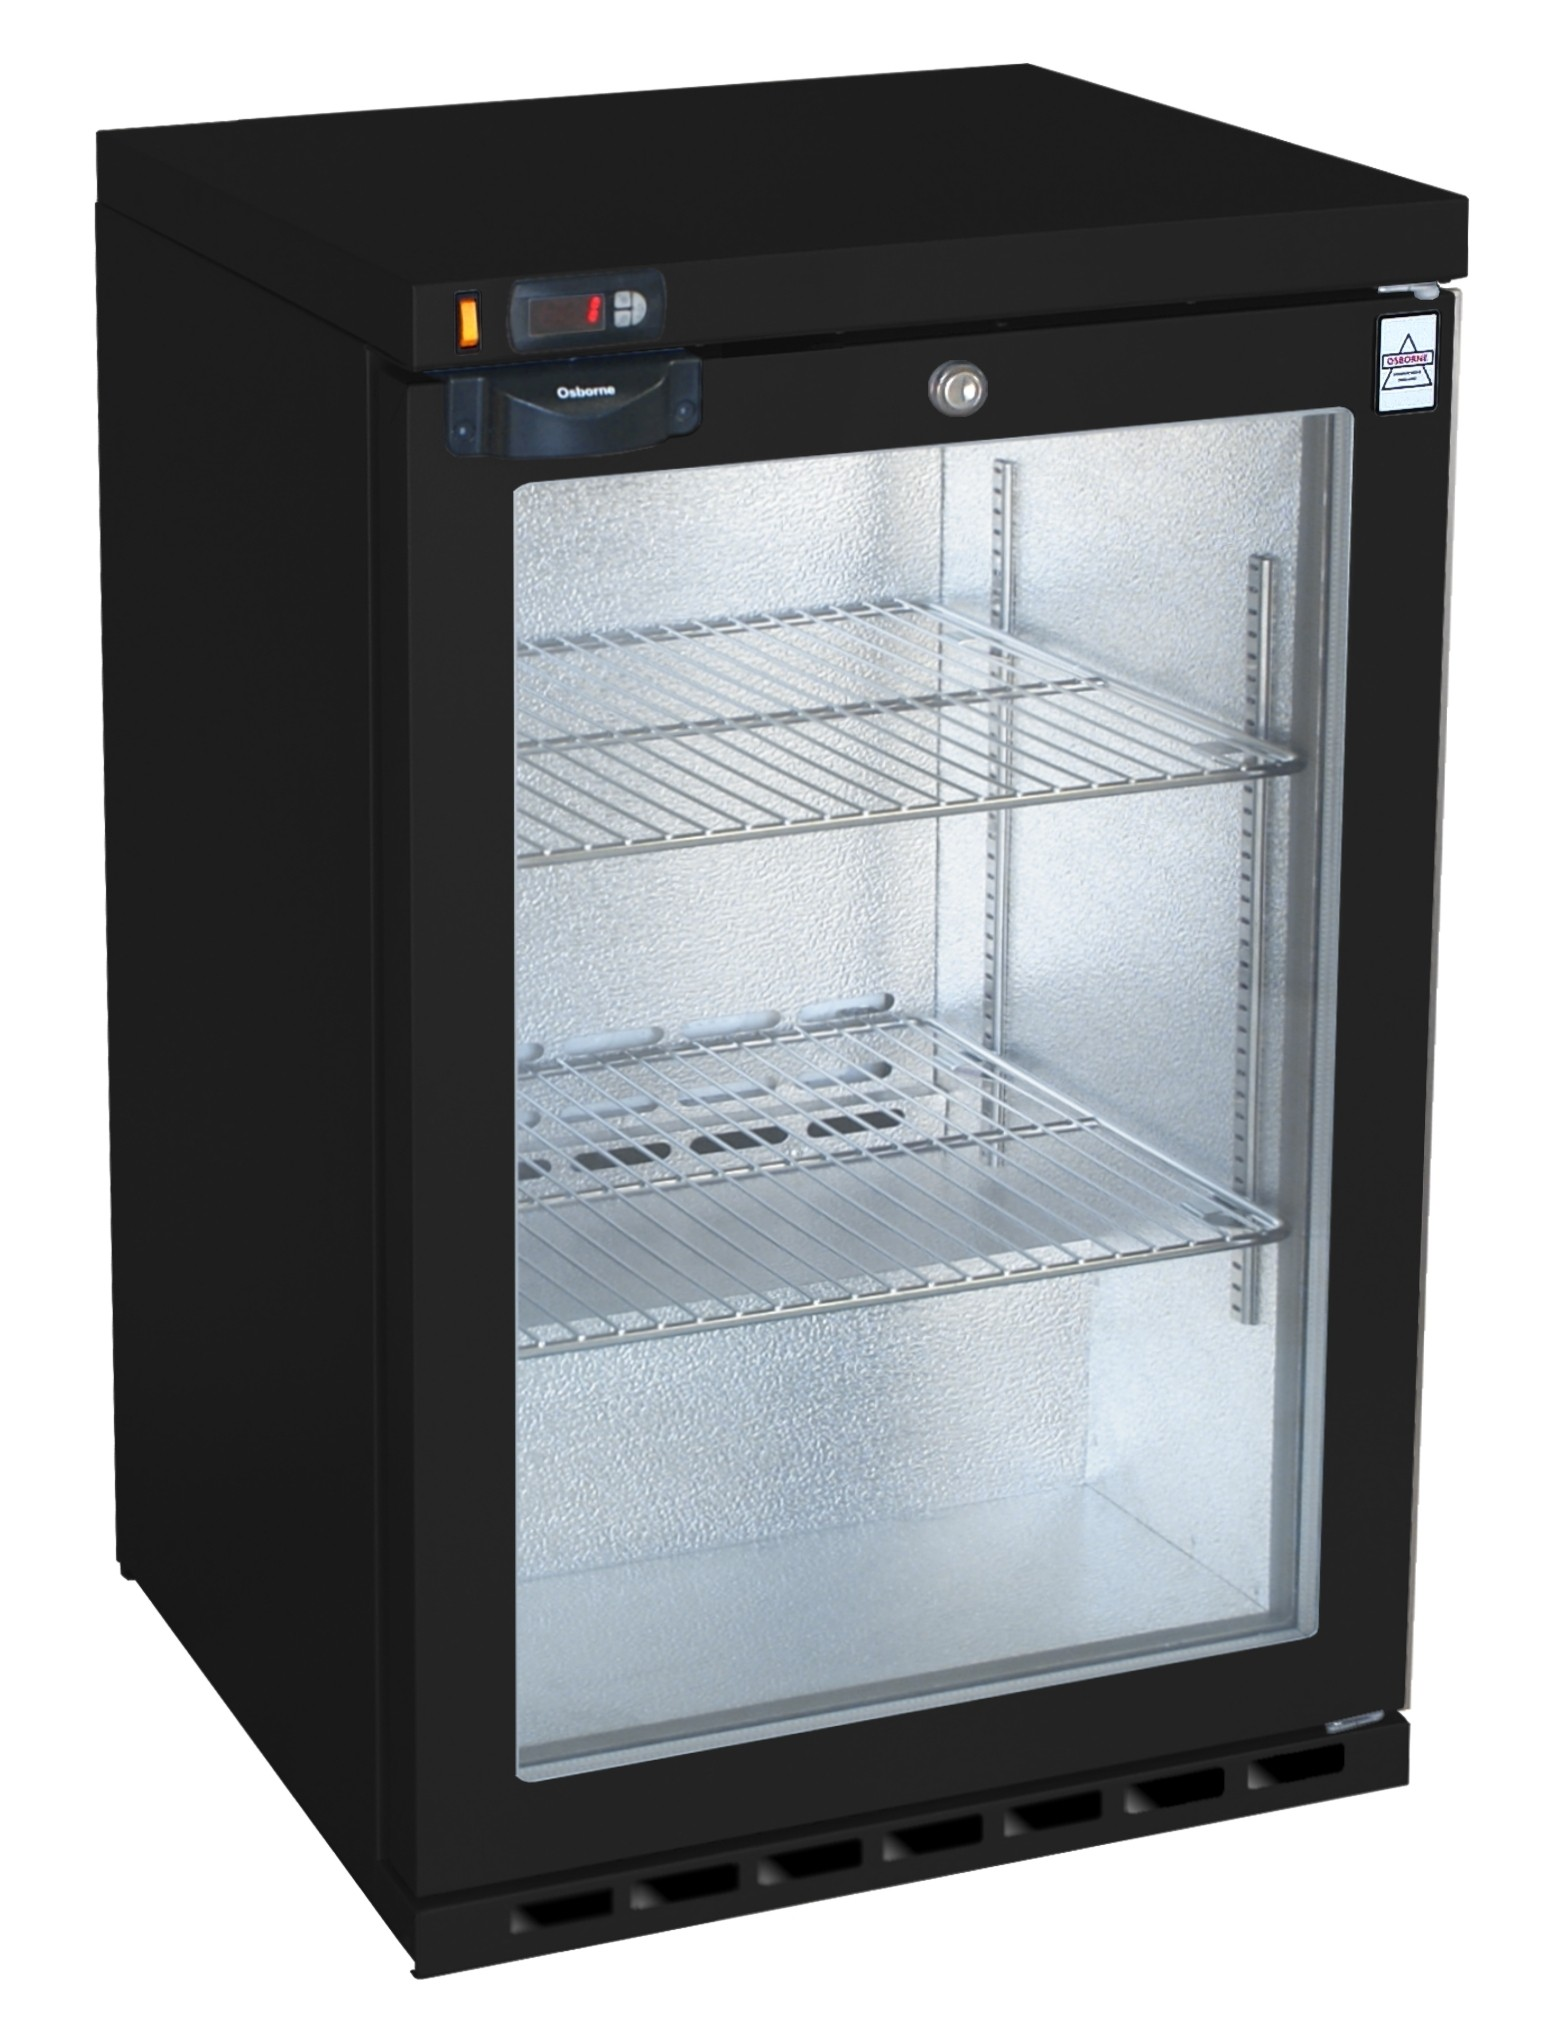 Osborne 180es Bottle Cooler Under Counter Bottle Coolers